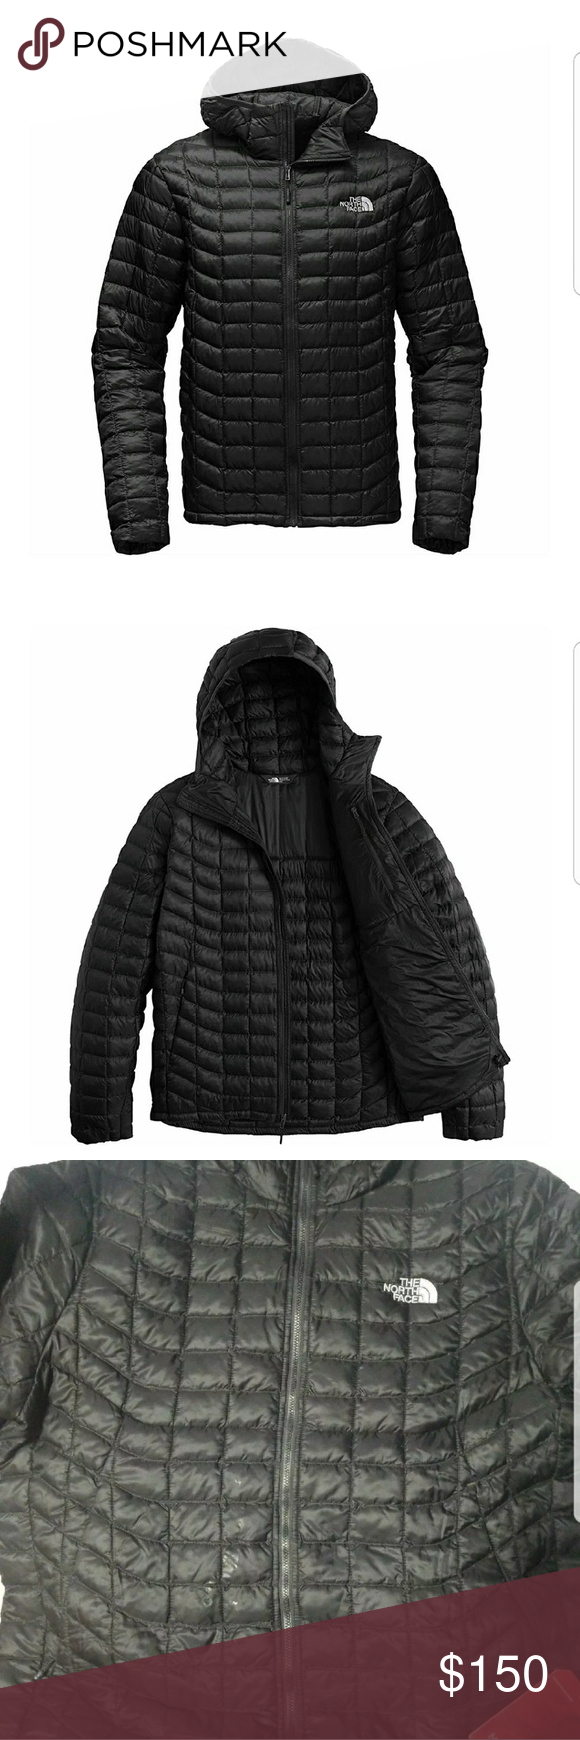 The North Face Thermoball Hoodie (L) DETAILS This hoodie